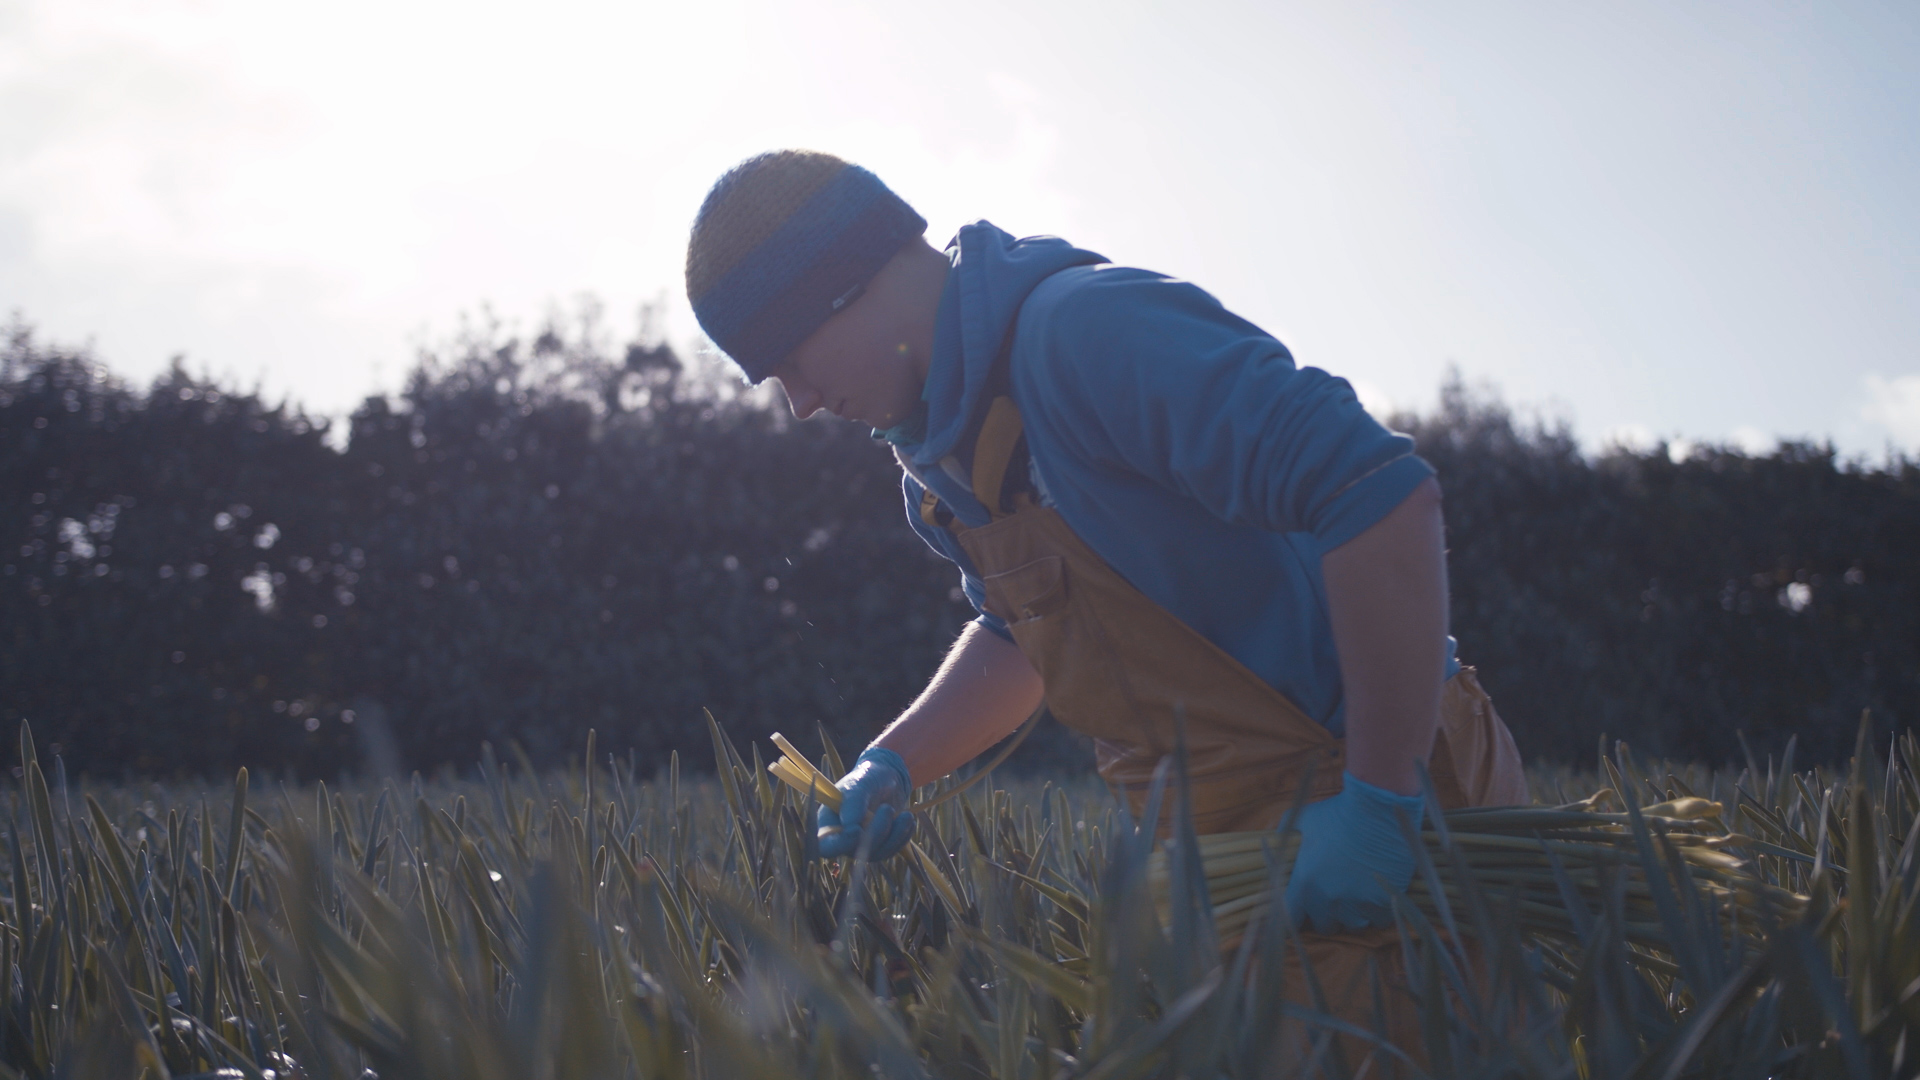 Another grab from the film - picking narcissi in one of the many flower fields